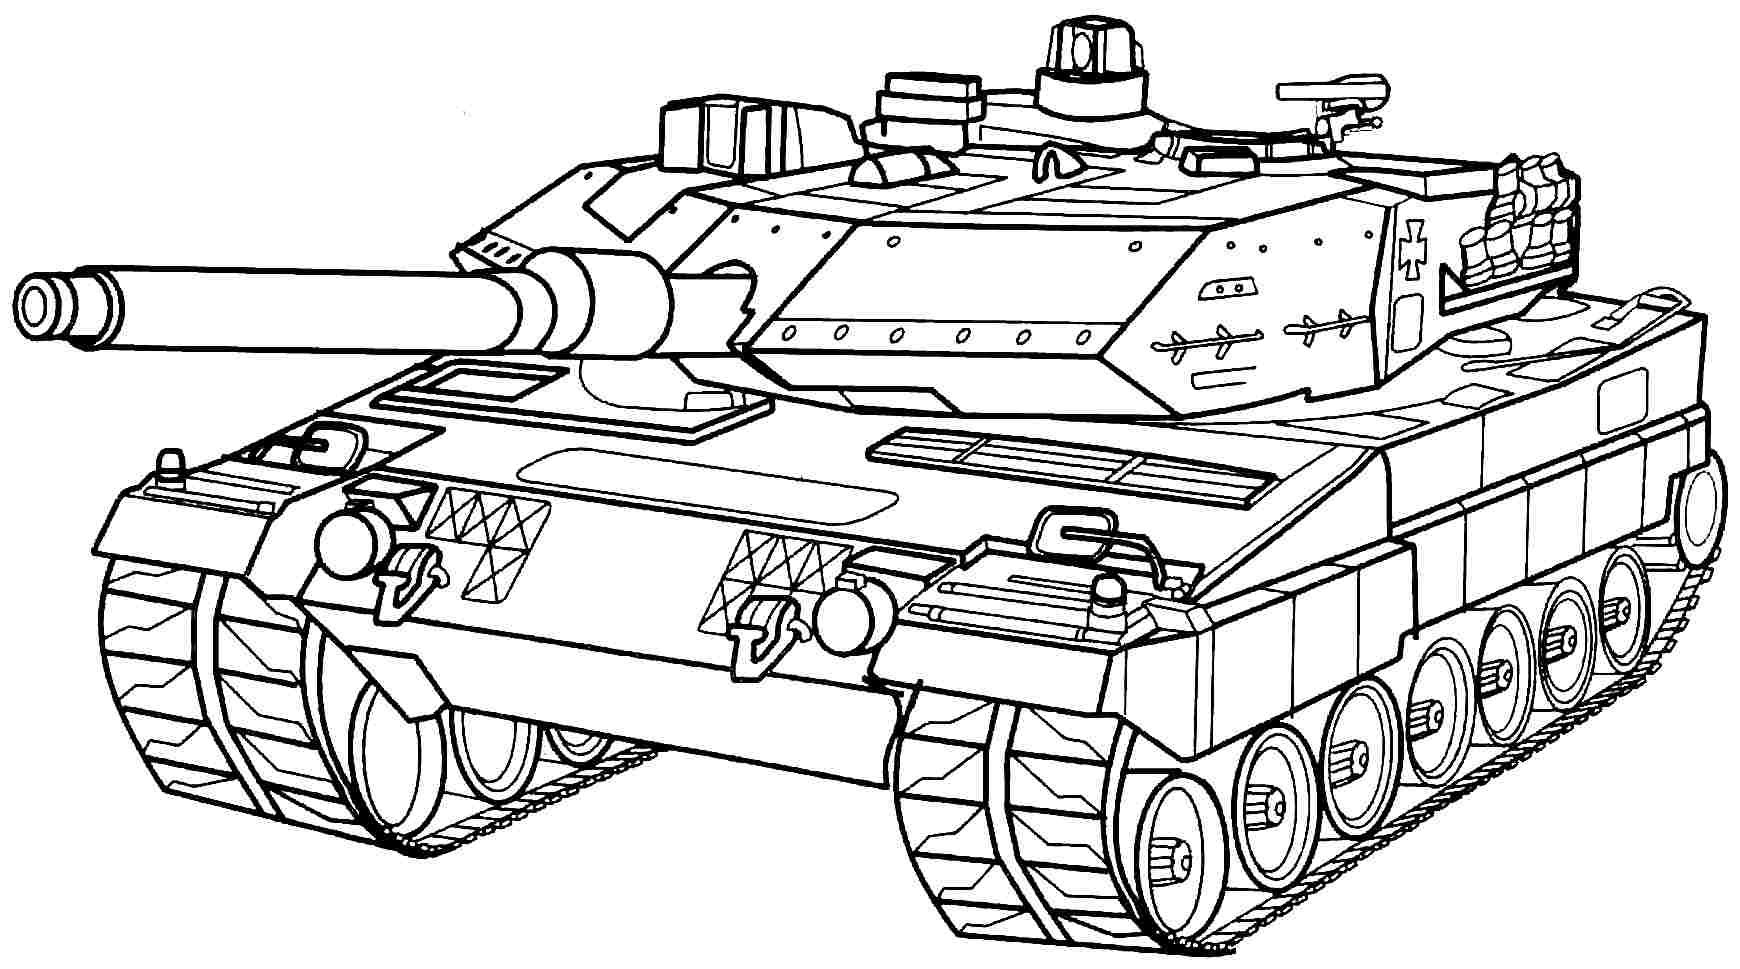 Car Coloring Pages Free Printable Coloring Pages Tank Drawing Military Drawings Coloring Pages